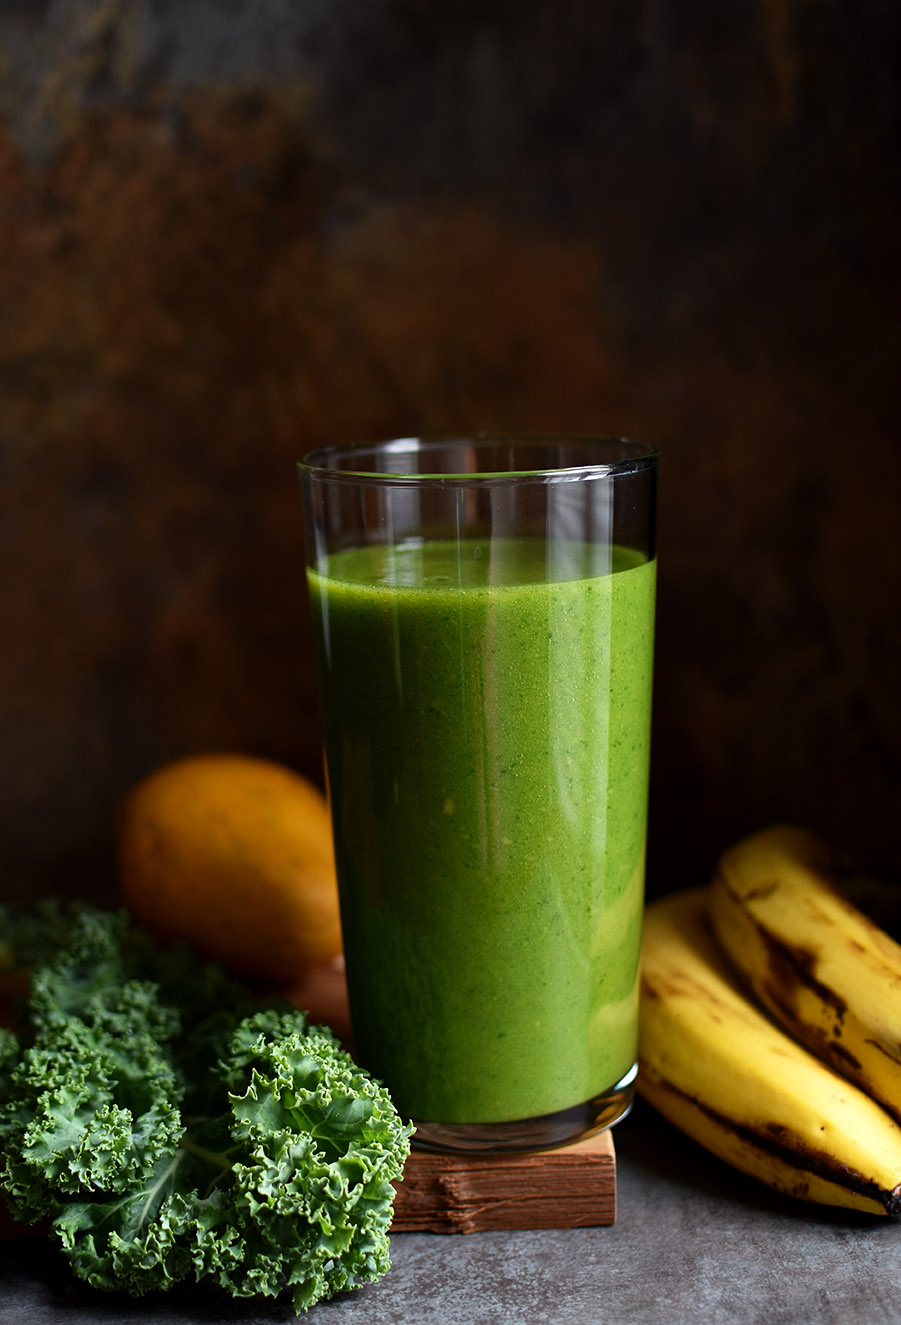 Kale Smoothie with Mango & Banana - Pepper Delight #pepperdelightblog #recipe #smoothie #supersmoothie #healthy #kale #breakfast #postworkoutsmoothie #greensmoothie #noextrasugaradded #kalesmoothie #detox #cleansing #vegan #superfood